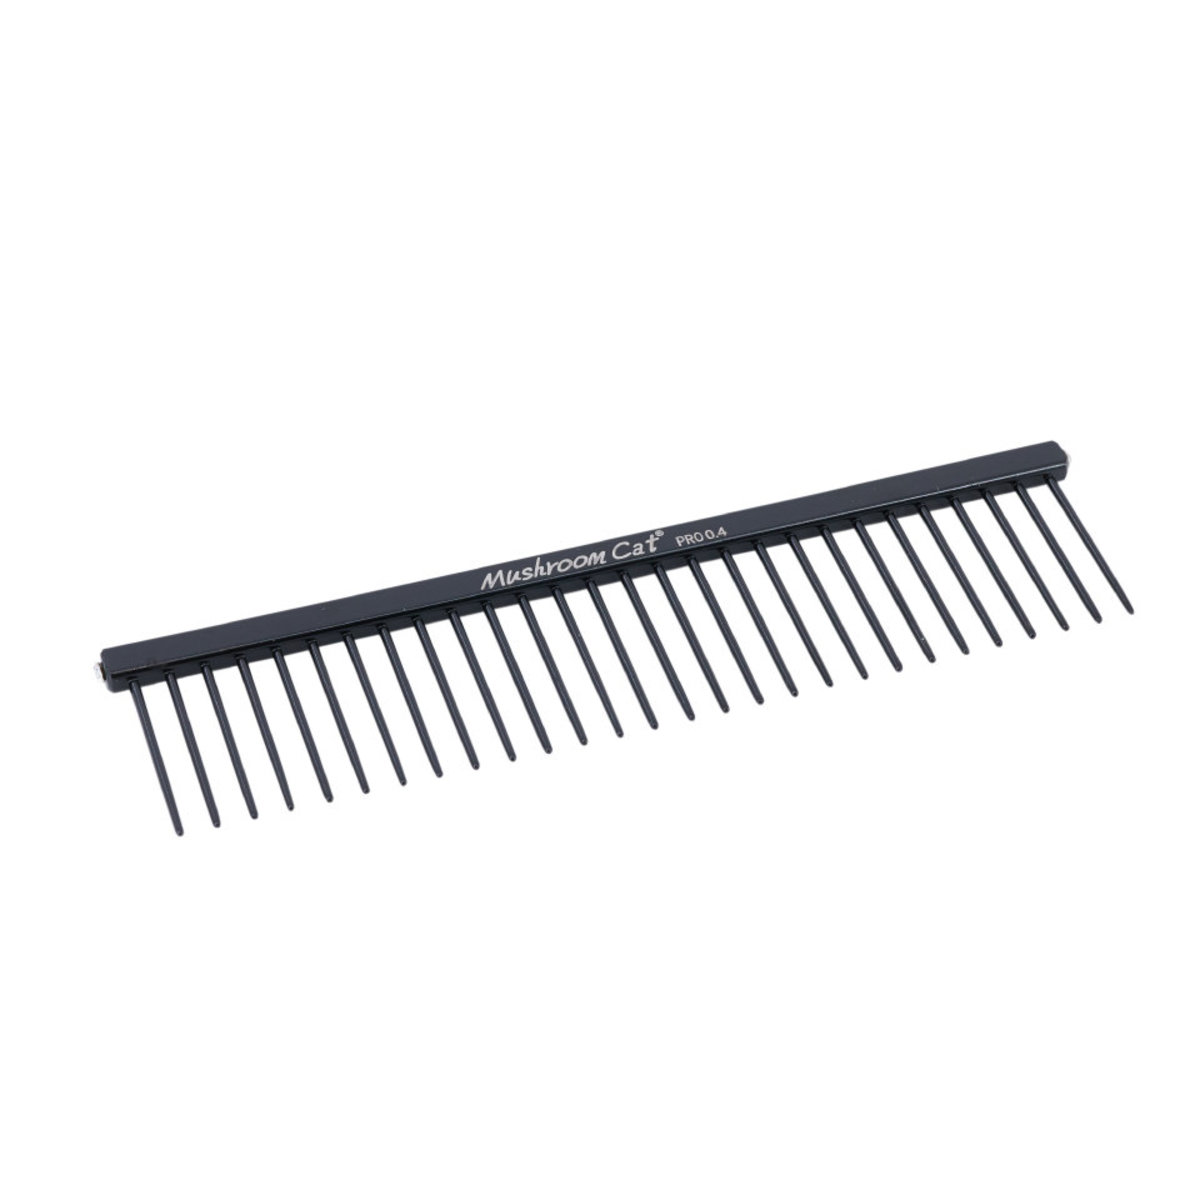 USA-professional Stainless Steel COARSE TOOTH COMB (for cats and dogs)